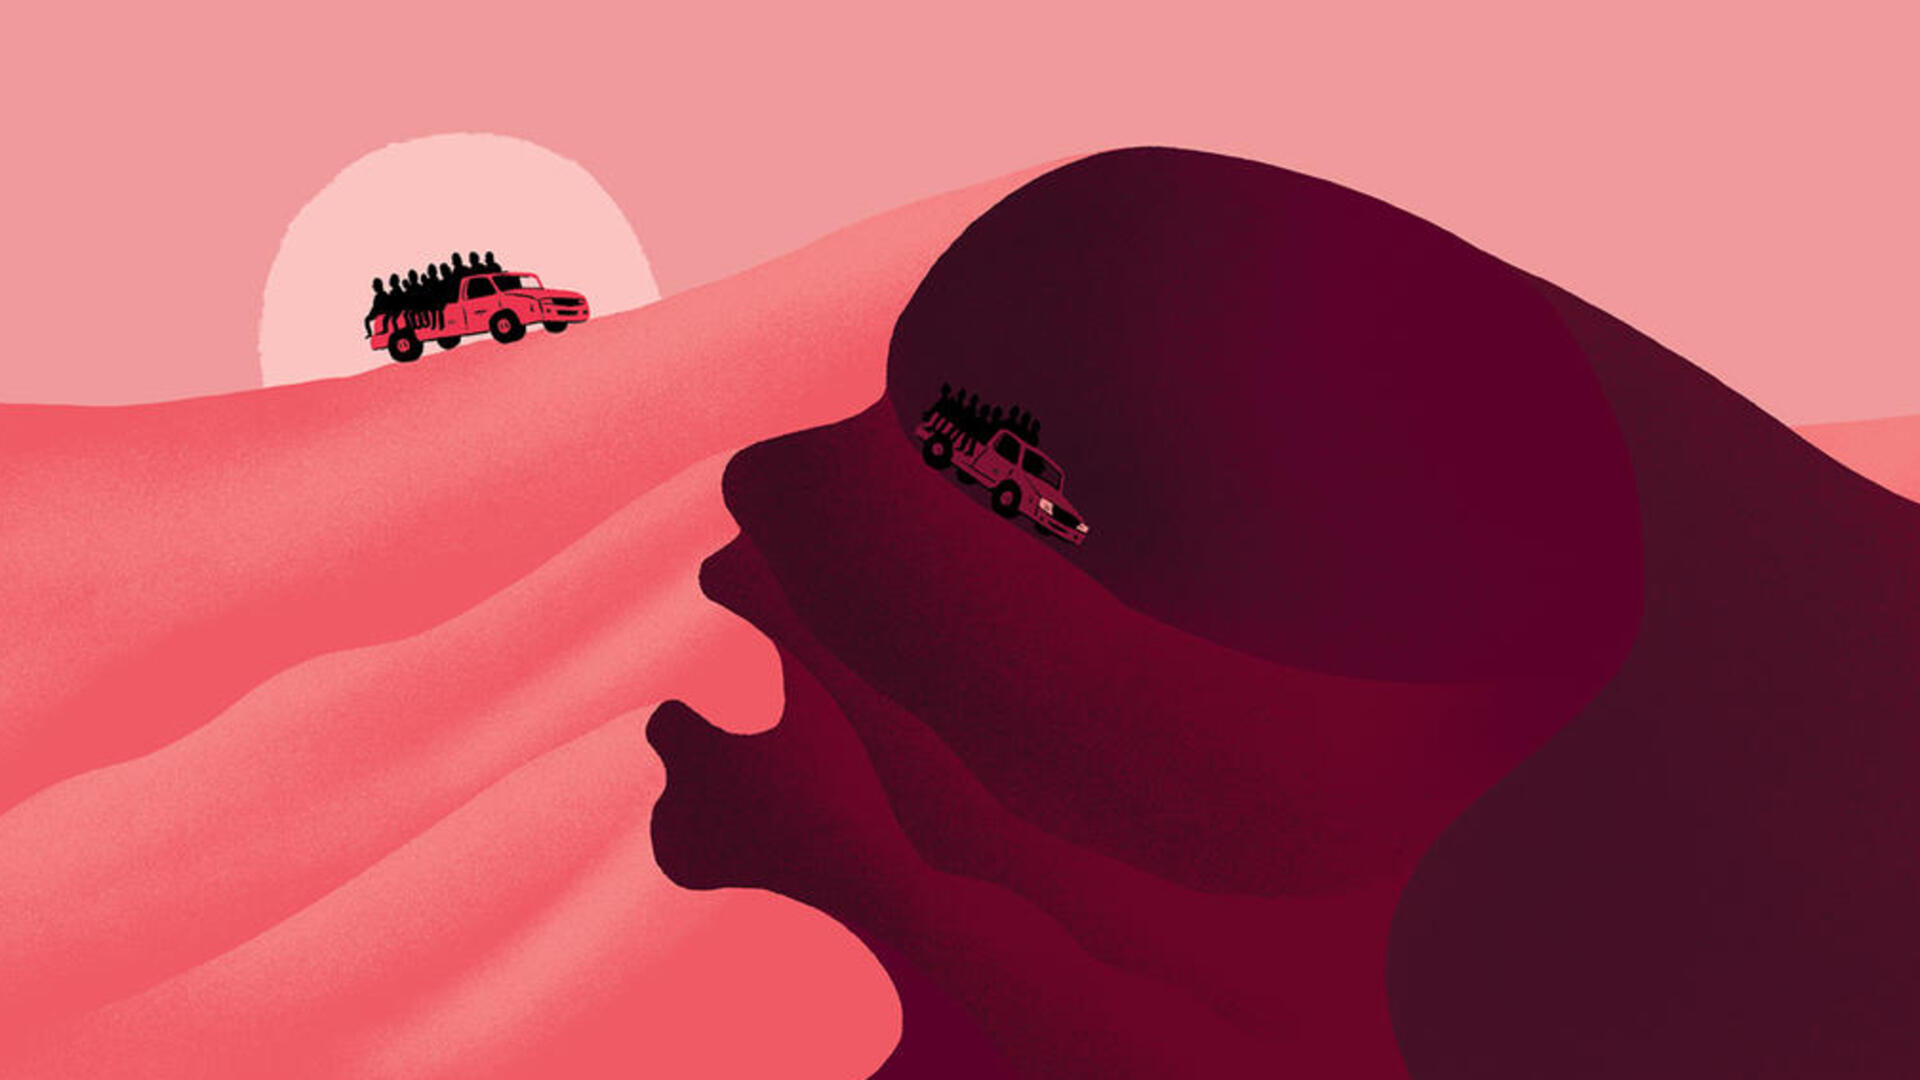 Two trucks drive over a very high sand dune with their beds filled almostly entirely with people. The illustration is done entirely in pink and black.